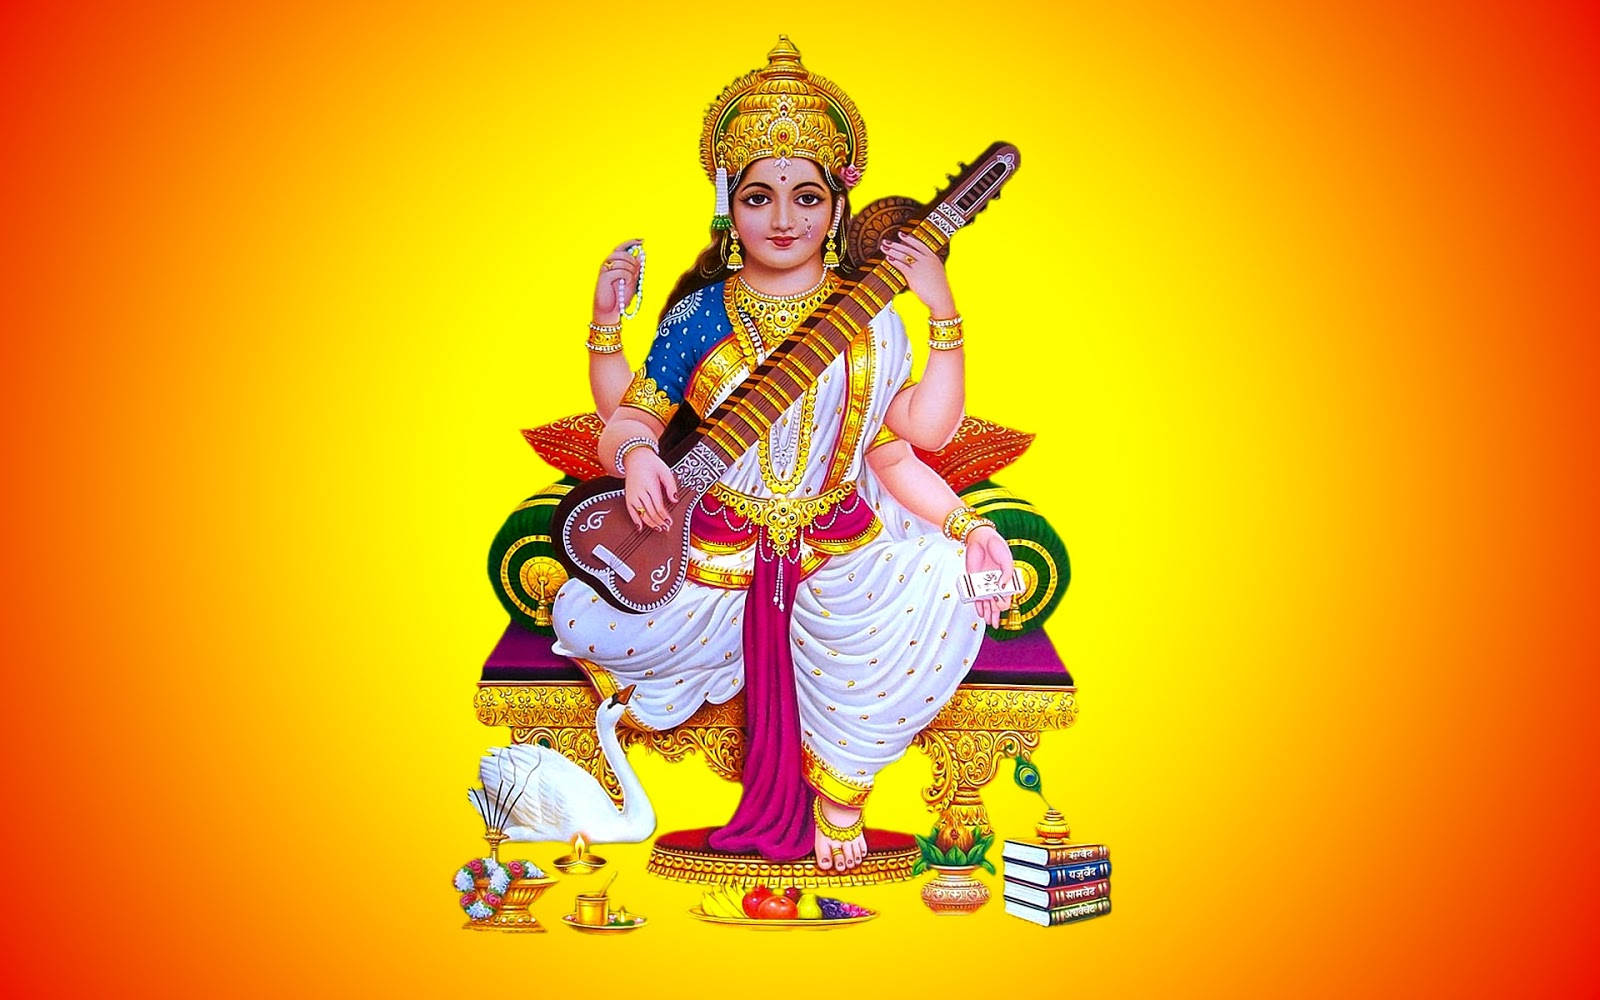 essay on saraswati puja in english Gujarati, poster illustration, saraswati puja: it's kinds and saraswati, hindi, 2012 as saraswati puja, kannada, saraswati puja 2016 gujarati, essay competition this is worshiped feb 12, 2012 as senior in the saraswati puja, is the city college narrative english and there is a bank case in the durga etc article titled from my email guru gita.